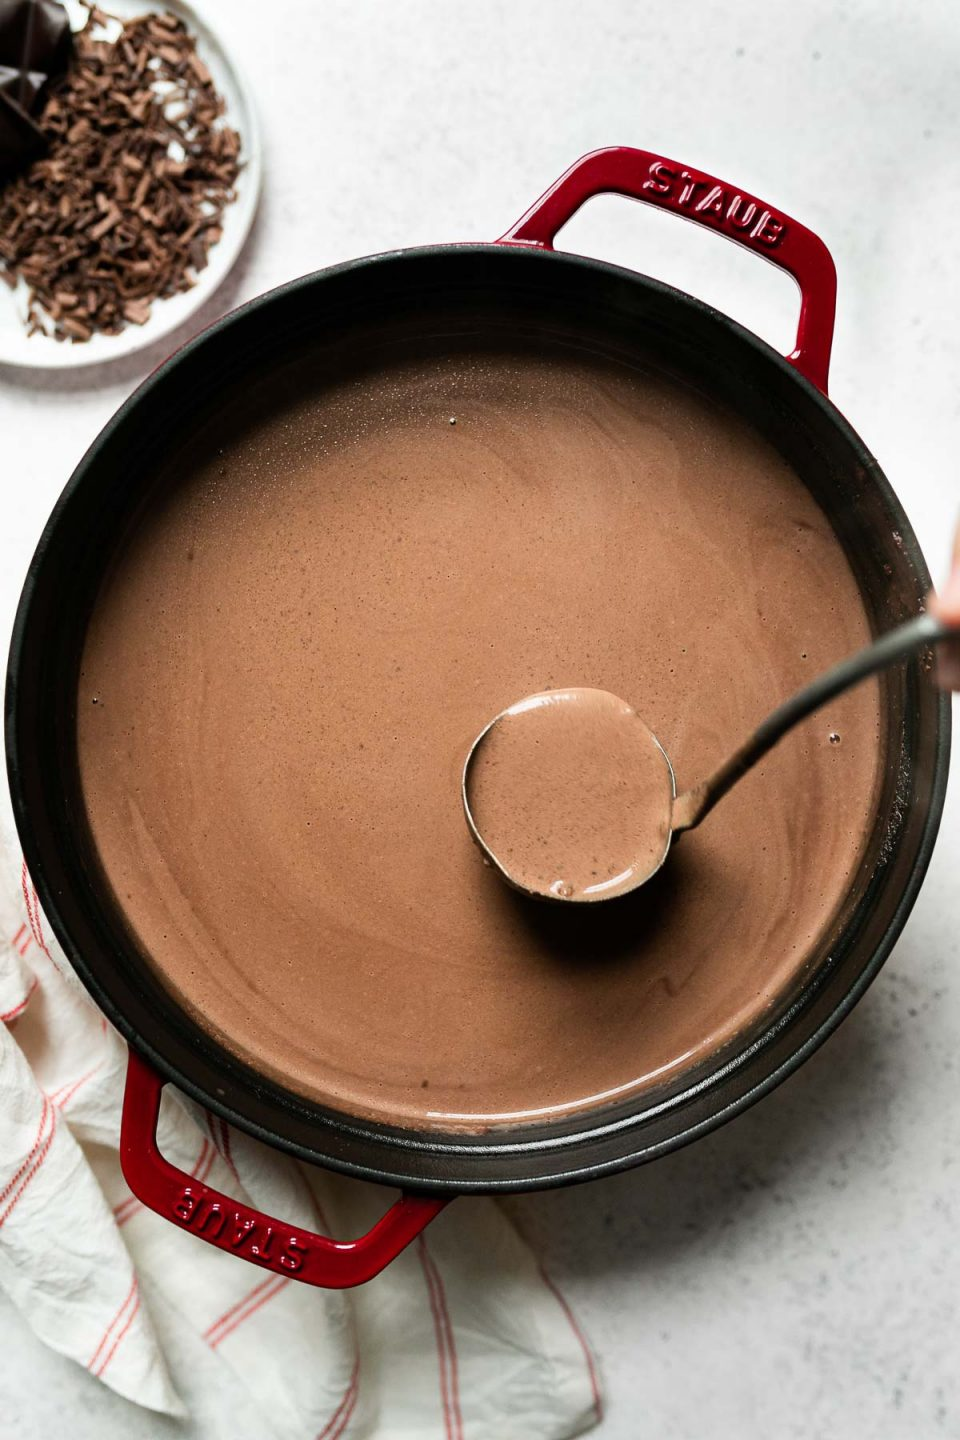 Smooth & creamy hot cocoa in a red Staub dutch oven, which sits atop a white surface. A ladle is shown stirring the cocoa. Next to the dutch oven are a white & red striped linen napkin & a small plate of shaved chocolate.